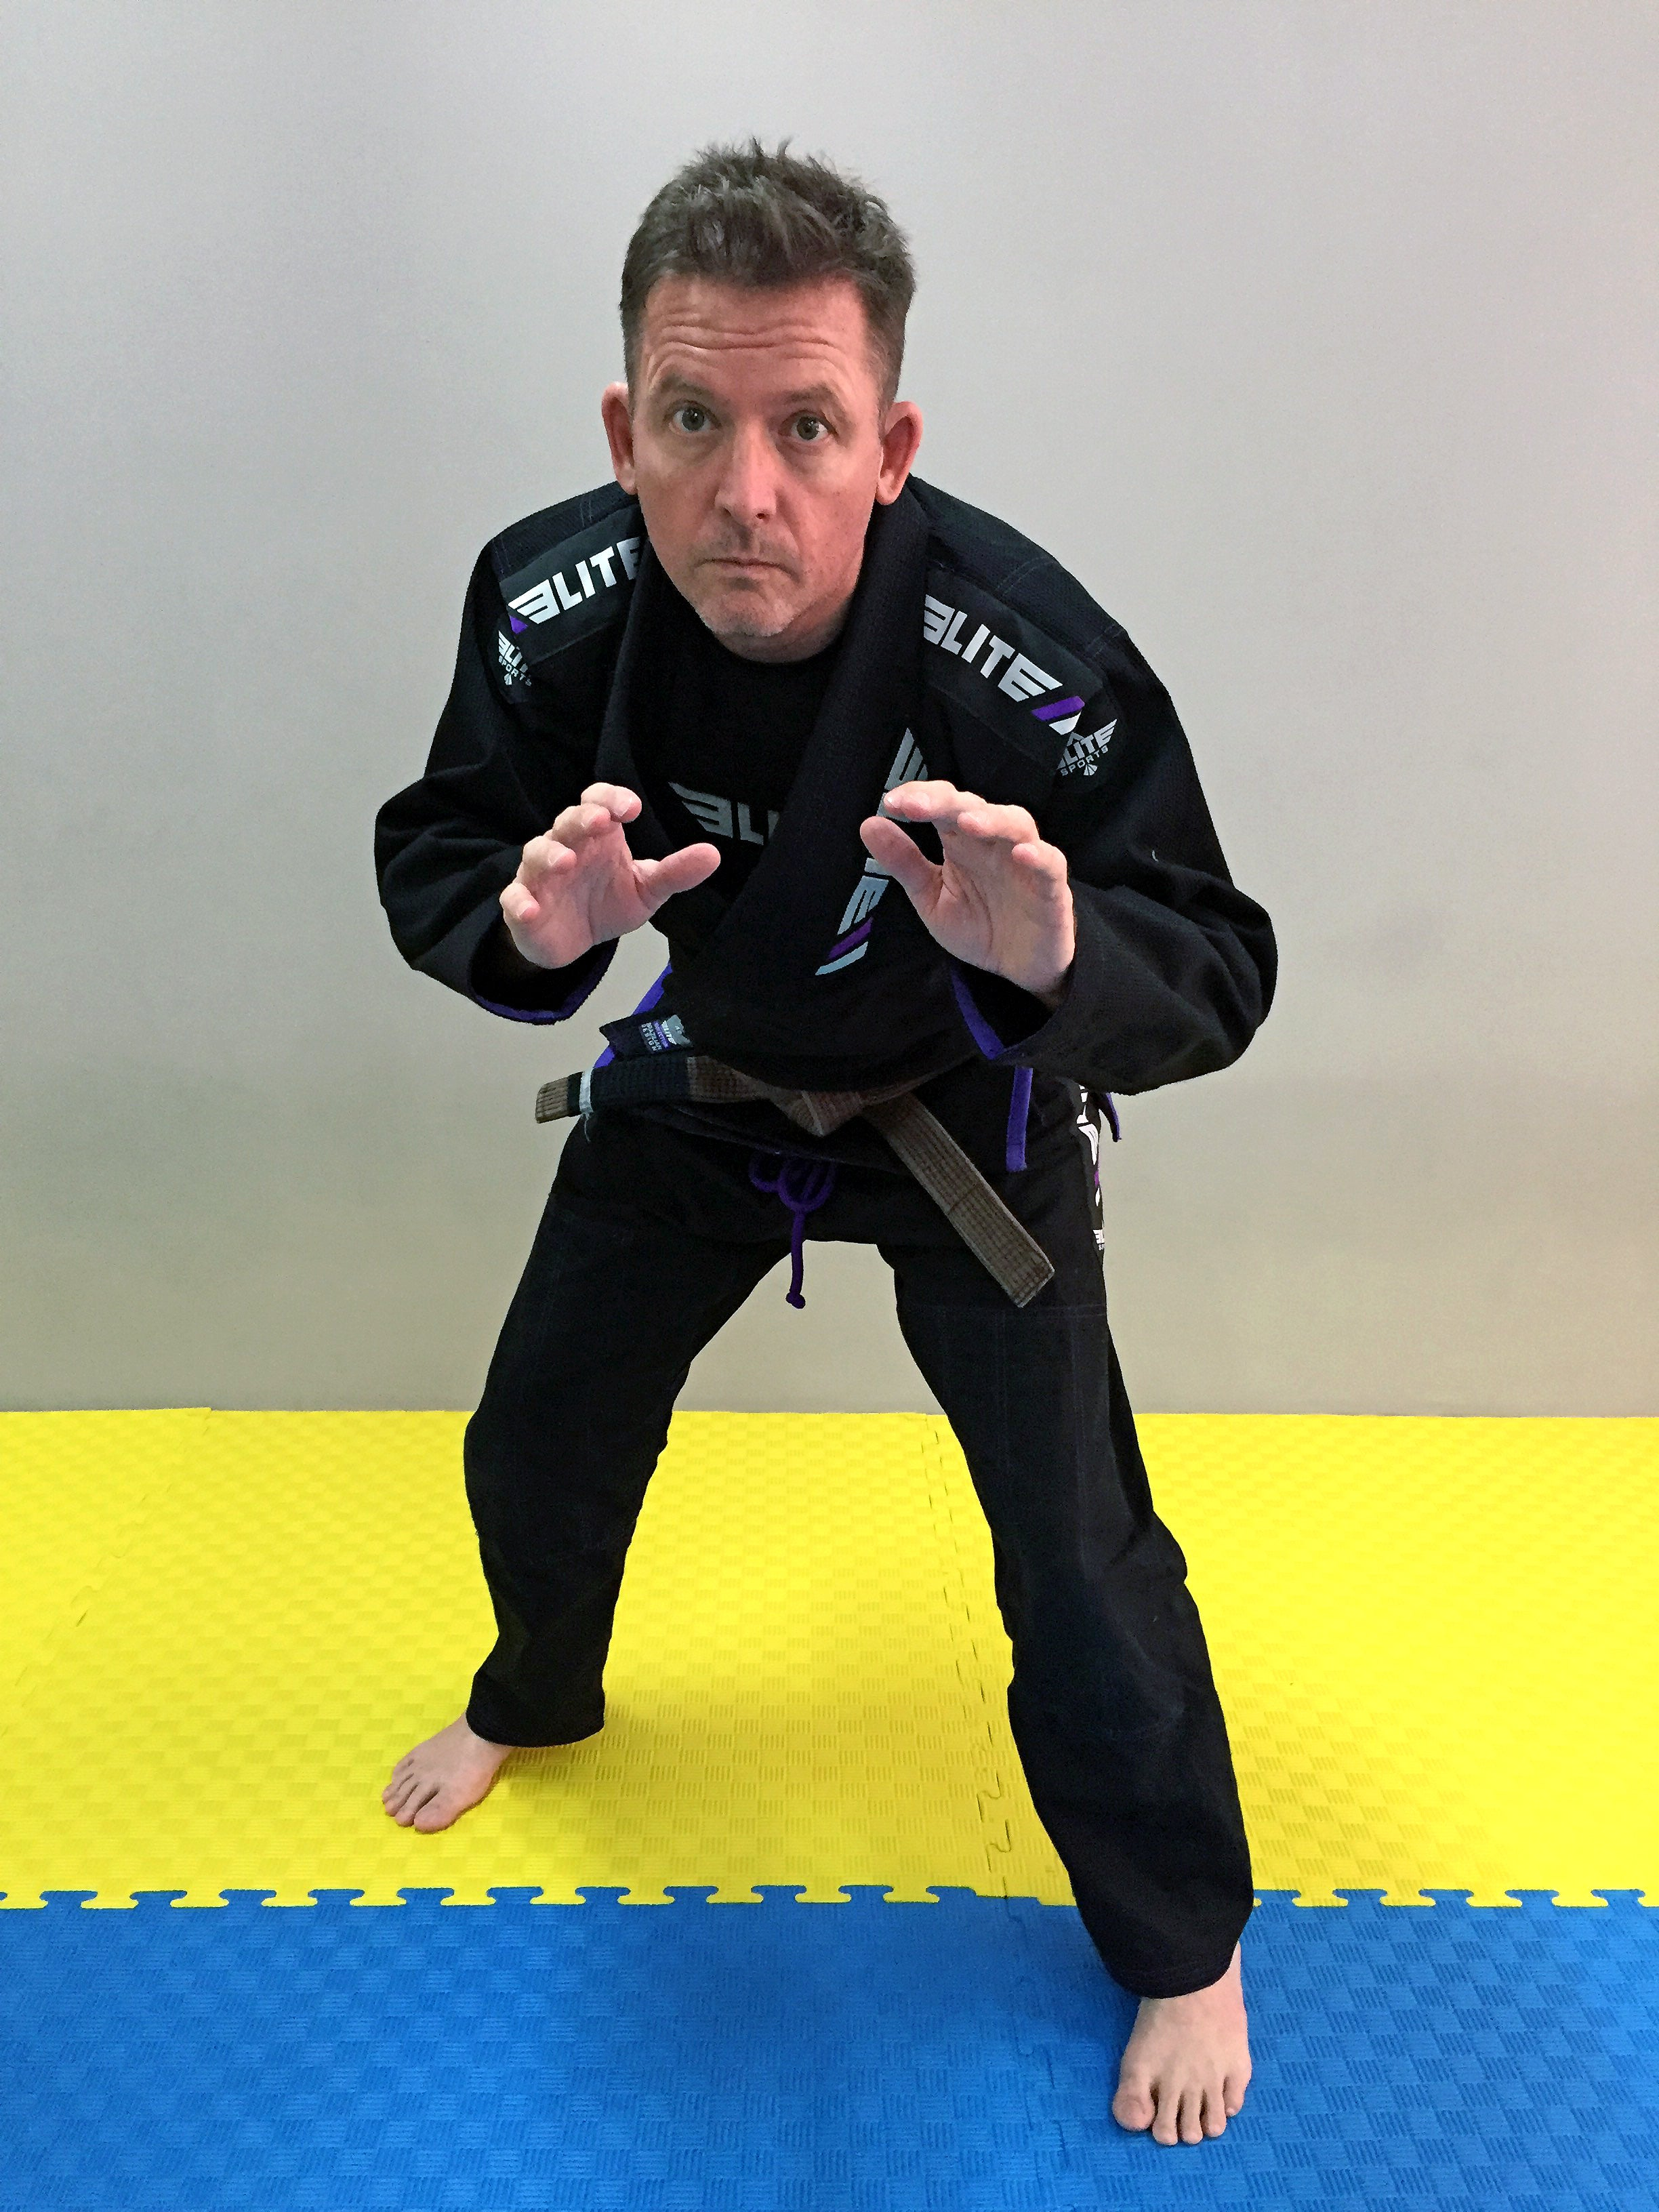 Elite Sports Team Elite Bjj Fighter Kieron Jeffers Image1